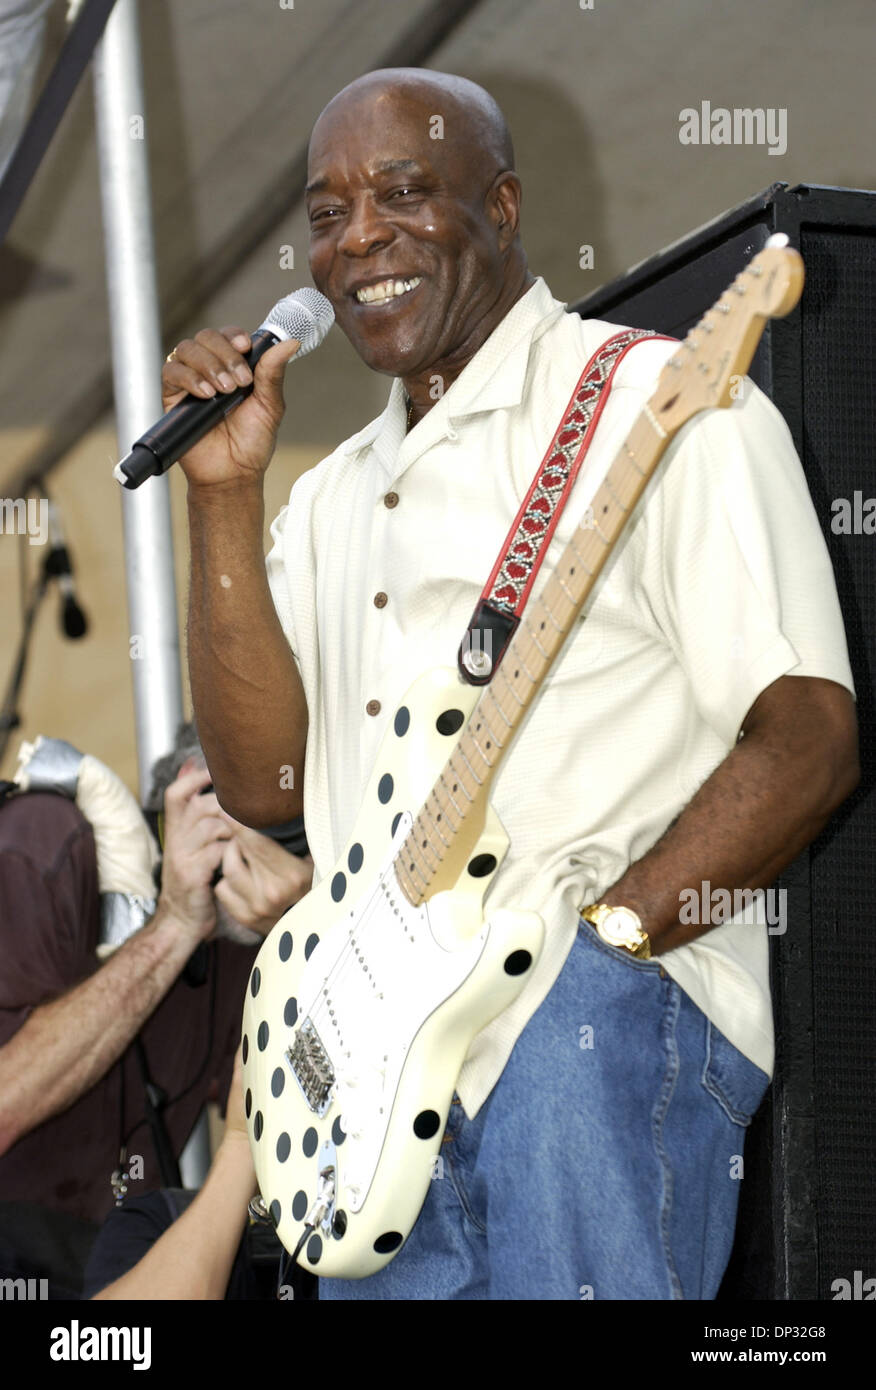 Jun 17, 2006; Manchester, TN, USA; Blues Legend BUDDY GUY performs live at the 2006 Bonnaroo Music Festival that took place in Manchester, TN. With over 70,000 fans in attendance at the 4 day festival they get a chance to see a variety of musicians, comedians, and artist. Mandatory Credit: Photo by Jason Moore/ZUMA Press. (©) Copyright 2006 by Jason Moore - Stock Image